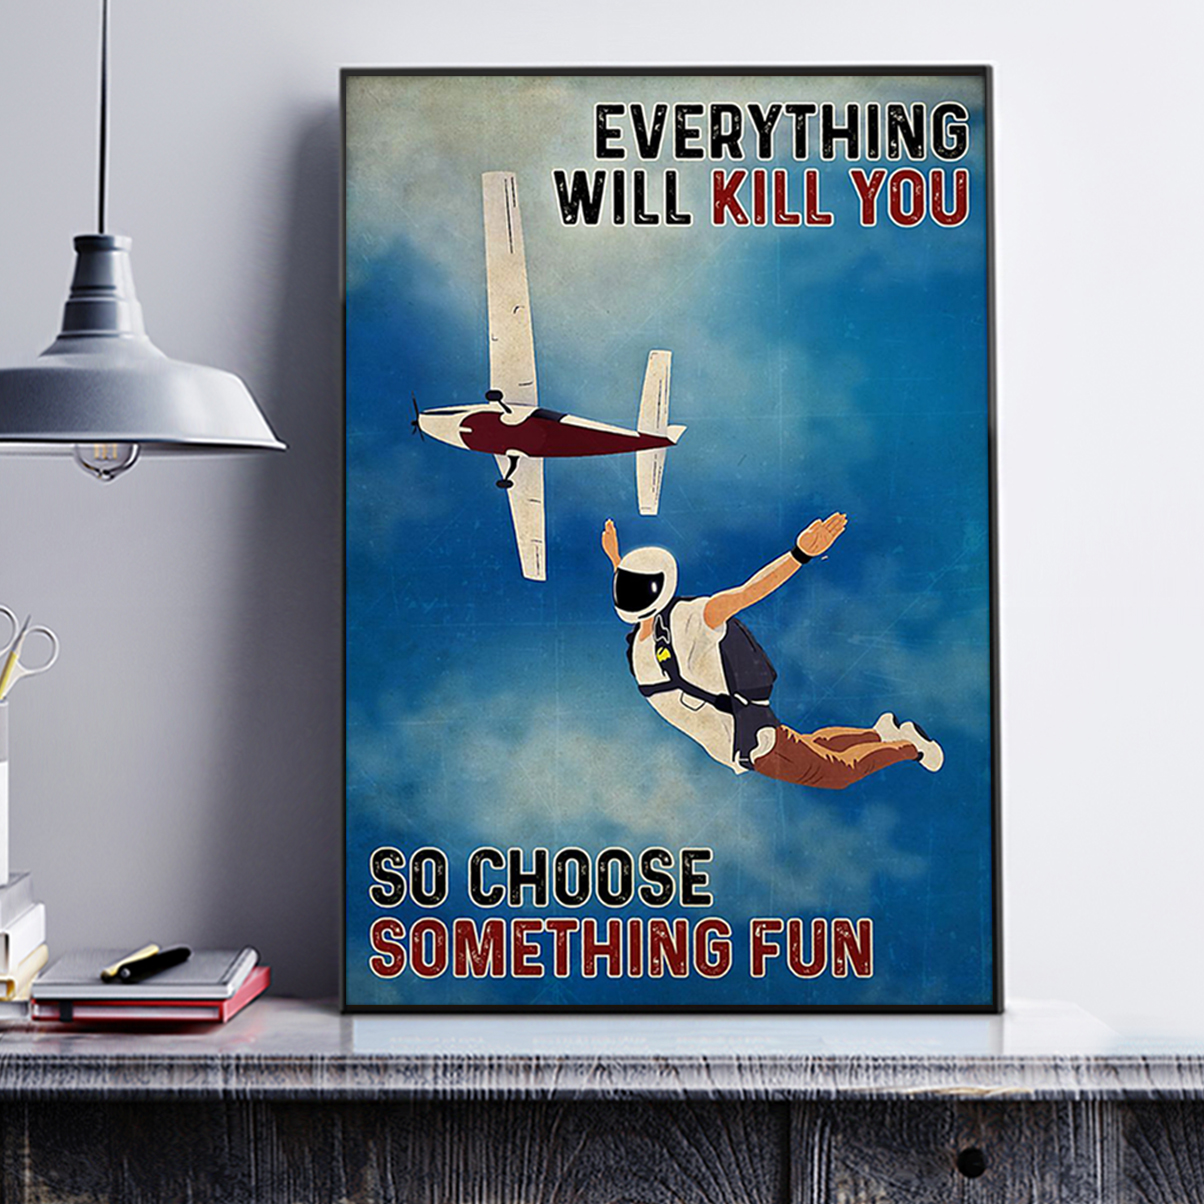 Skydiving everything everything will kill you poster A2